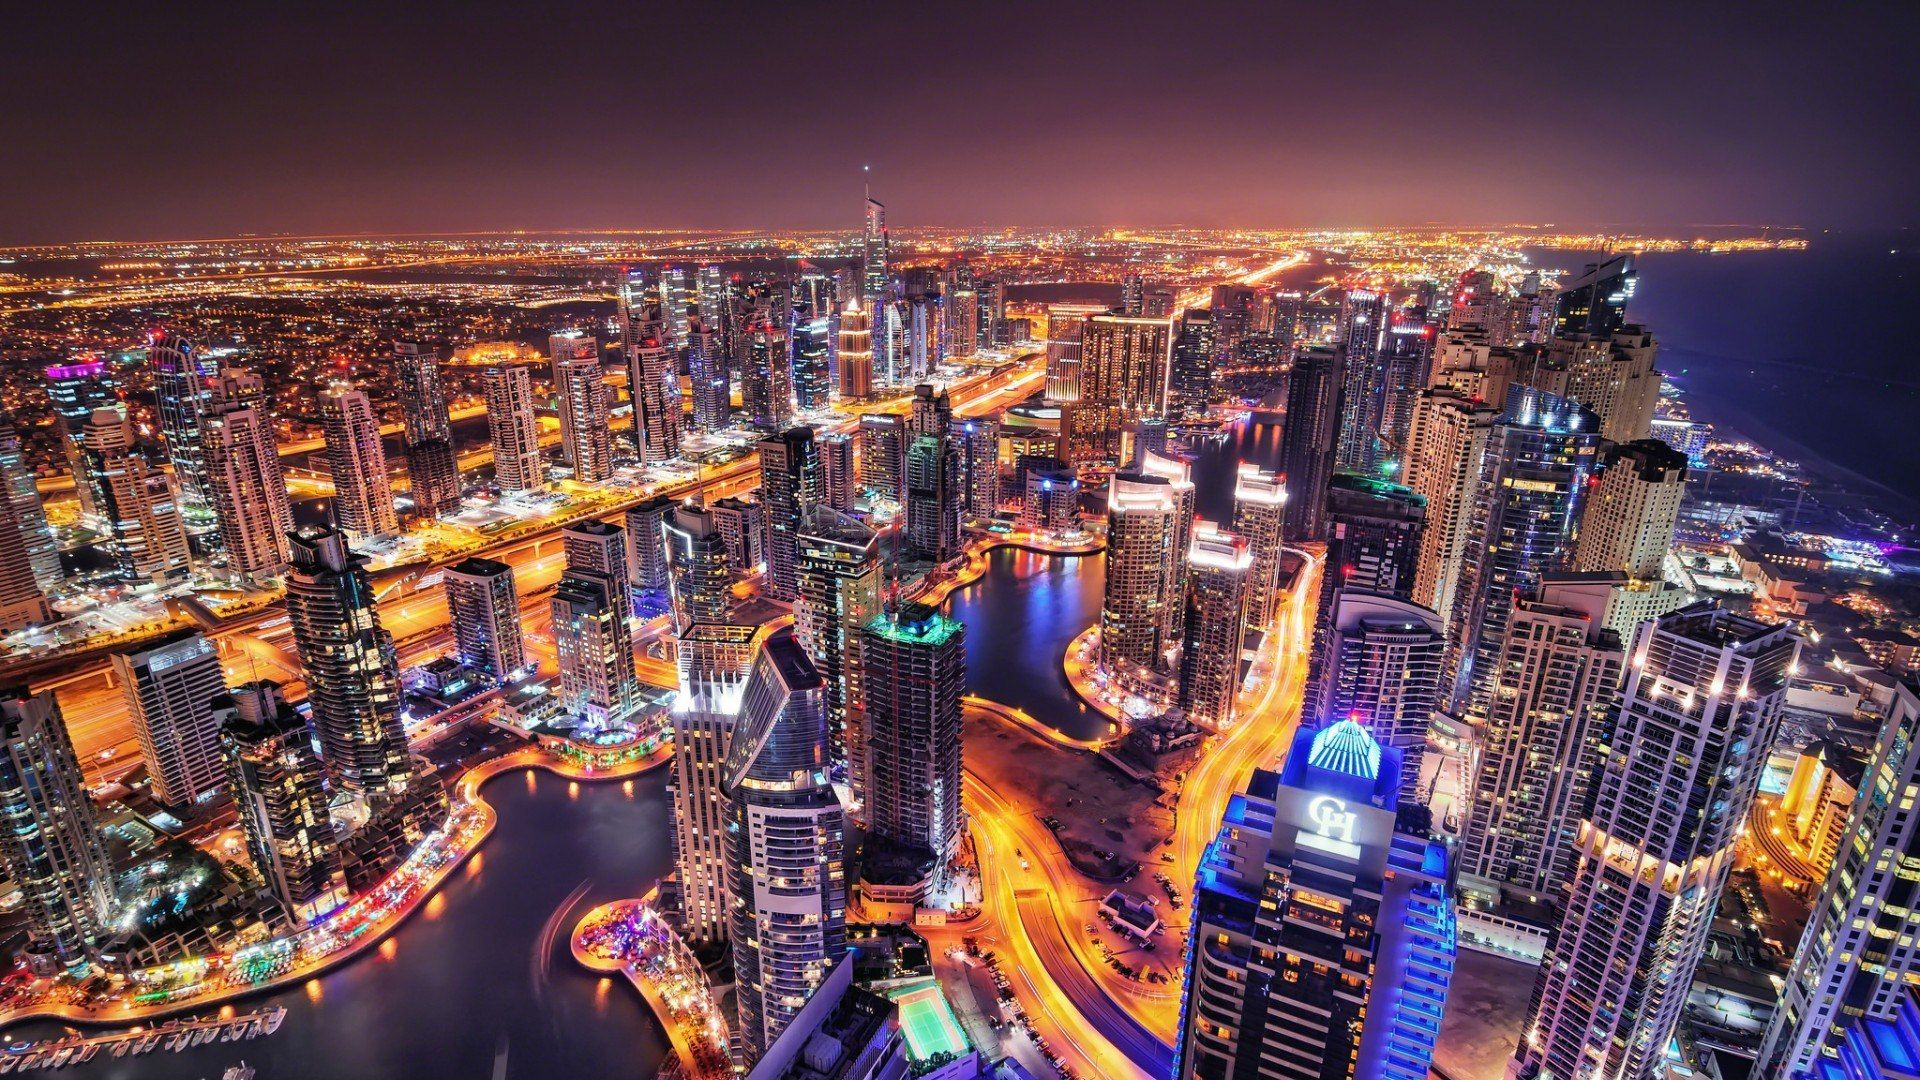 Dubai City Skyline Widescreen Hd Wallpaper Wallpaper Gallery 1920×1200 Dubai Wallpapers ...